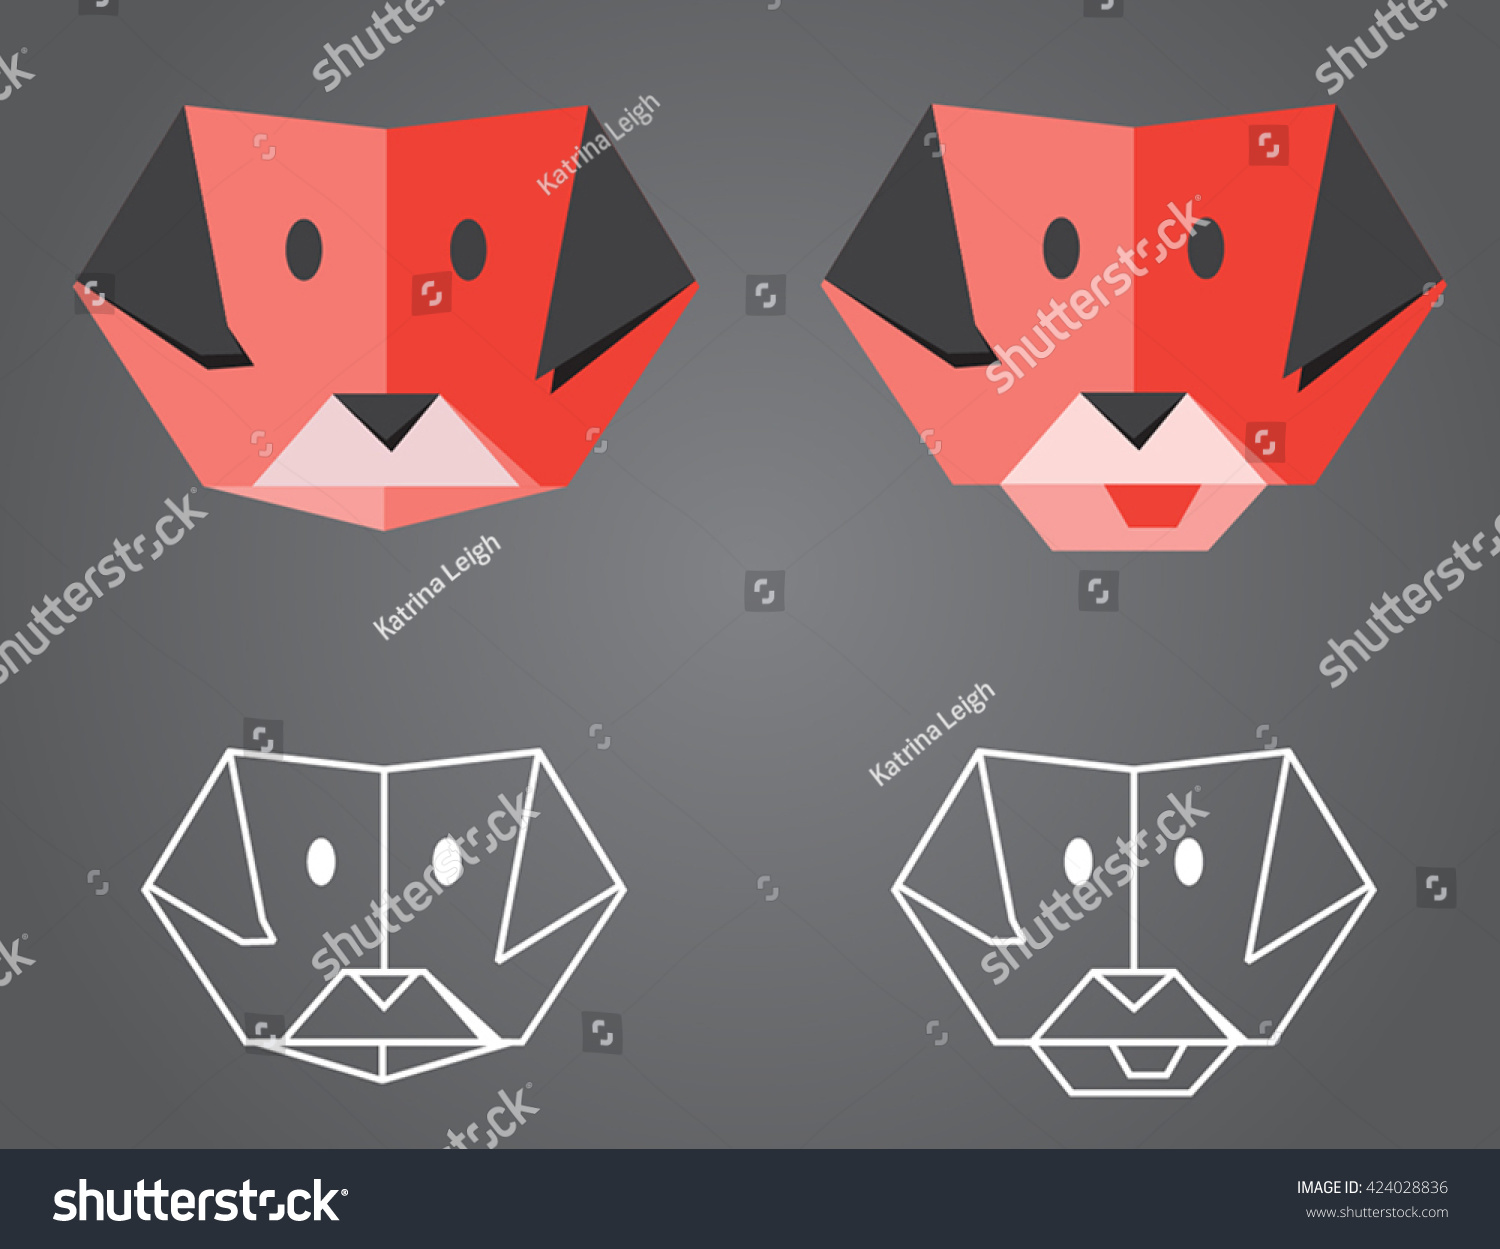 Origami dog face how to origami - Origami Dog Illustration Of Folded Origami Dog Faces Plus Low Poly Outline Versions